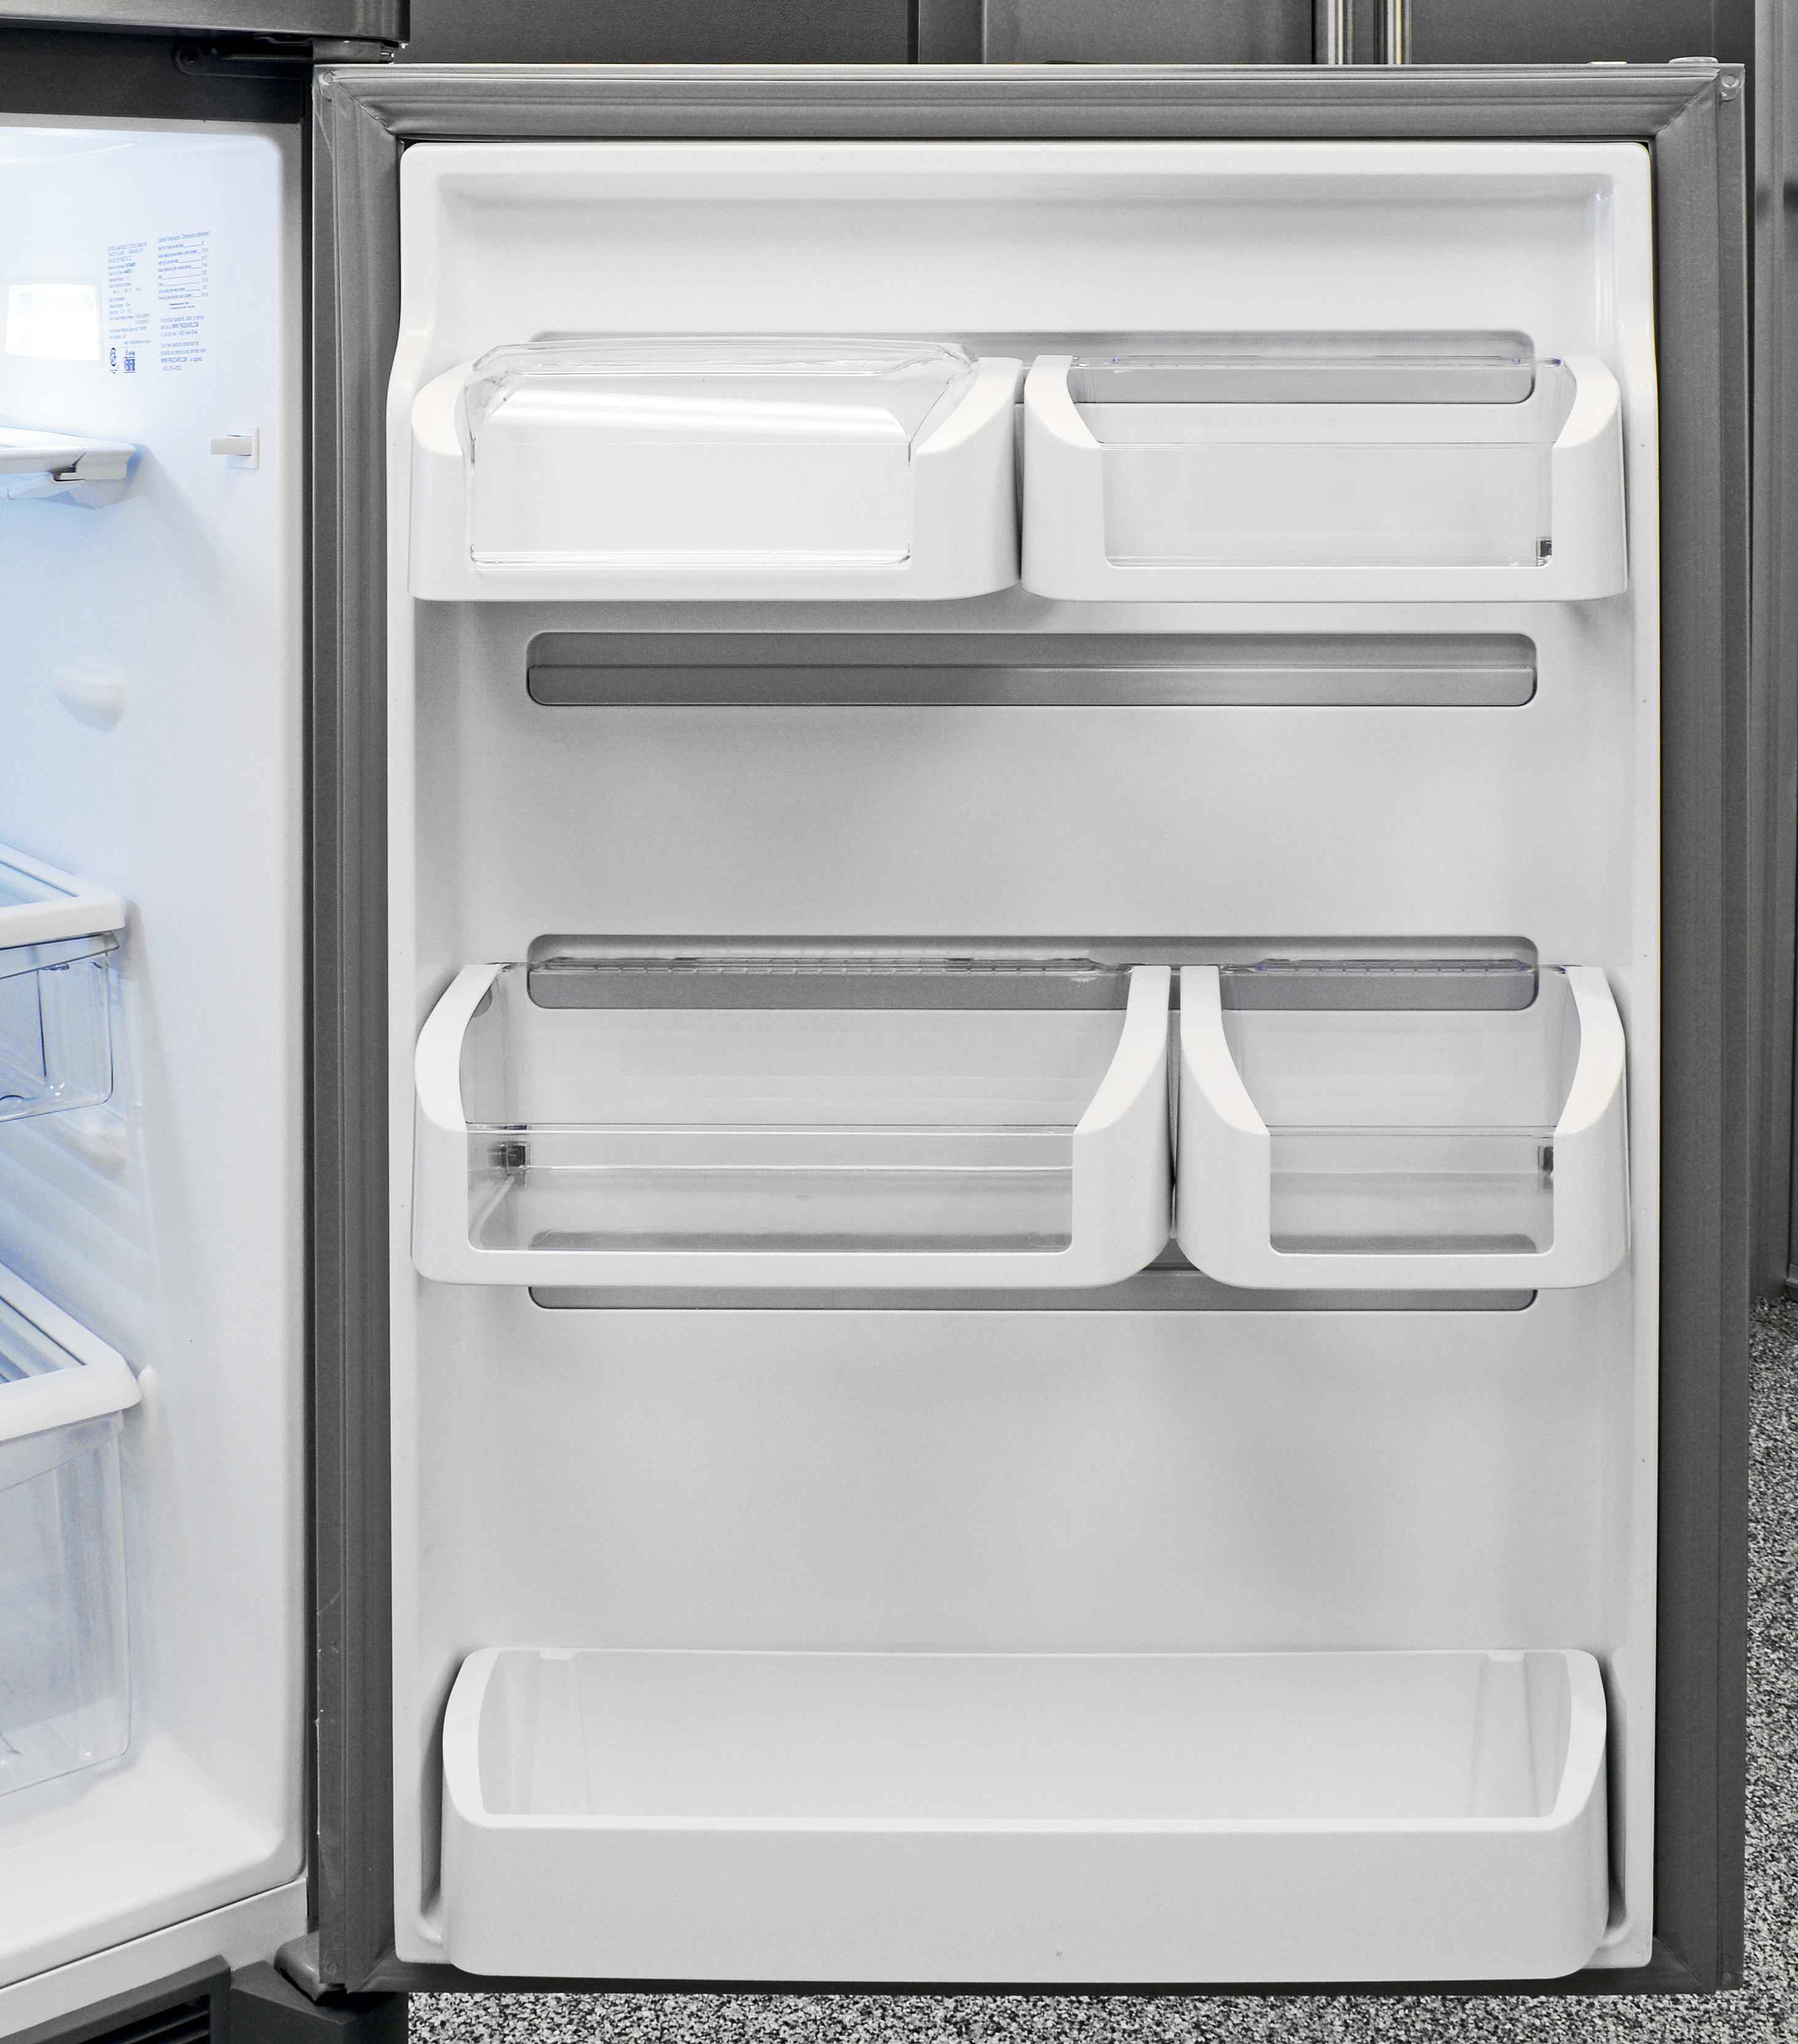 You can leave the Frigidaire Gallery FGHT2046QF's door shelves in a traditional layout as seen here, or you can mix and match levels, allowing you to slide the buckets left and right on gray plastic runners.